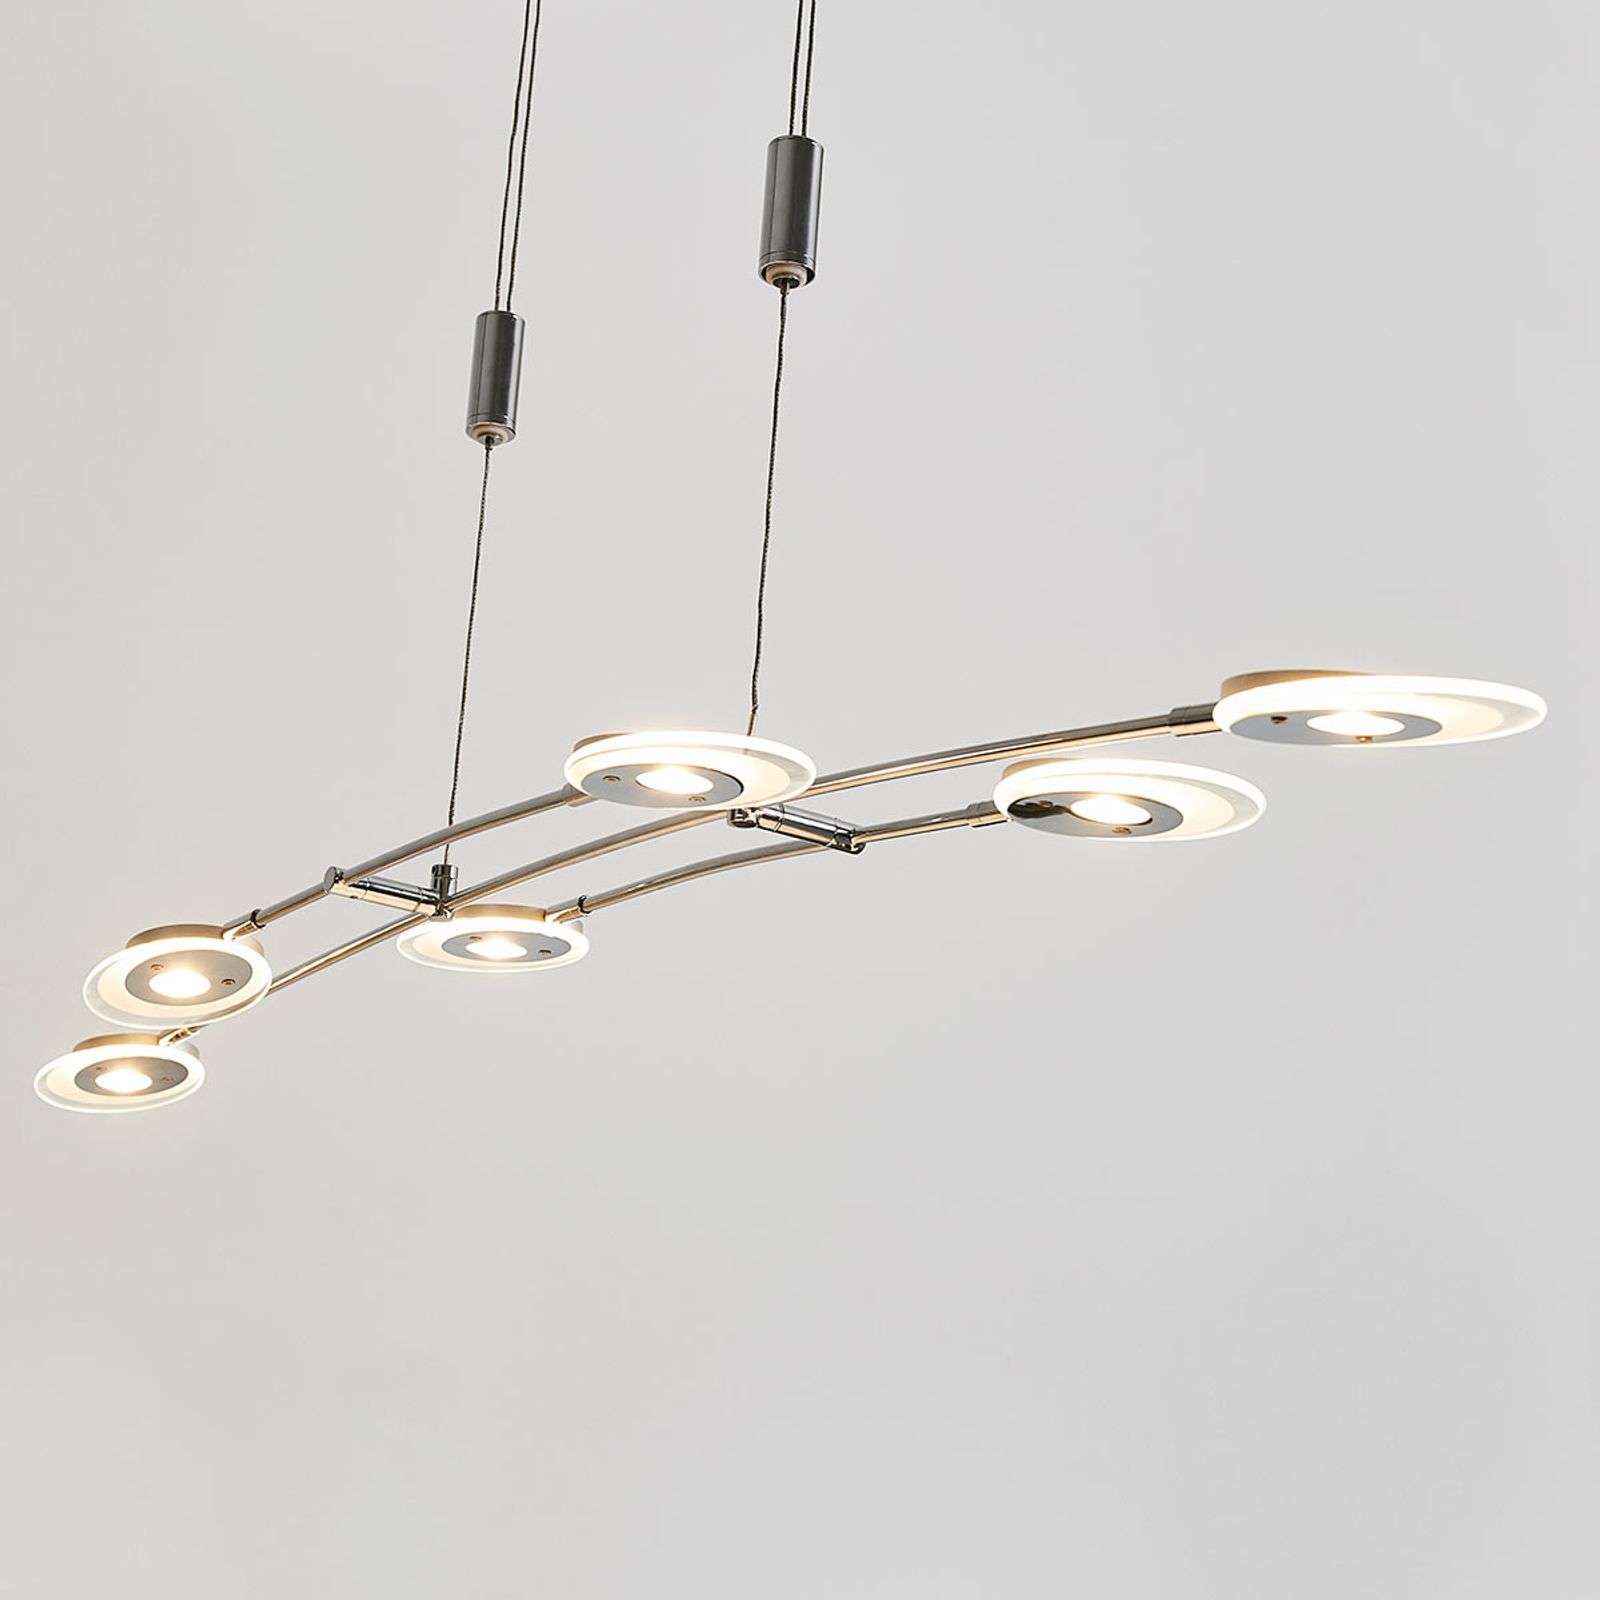 Suspension LED Alecia six lampes, à hauteur régl.